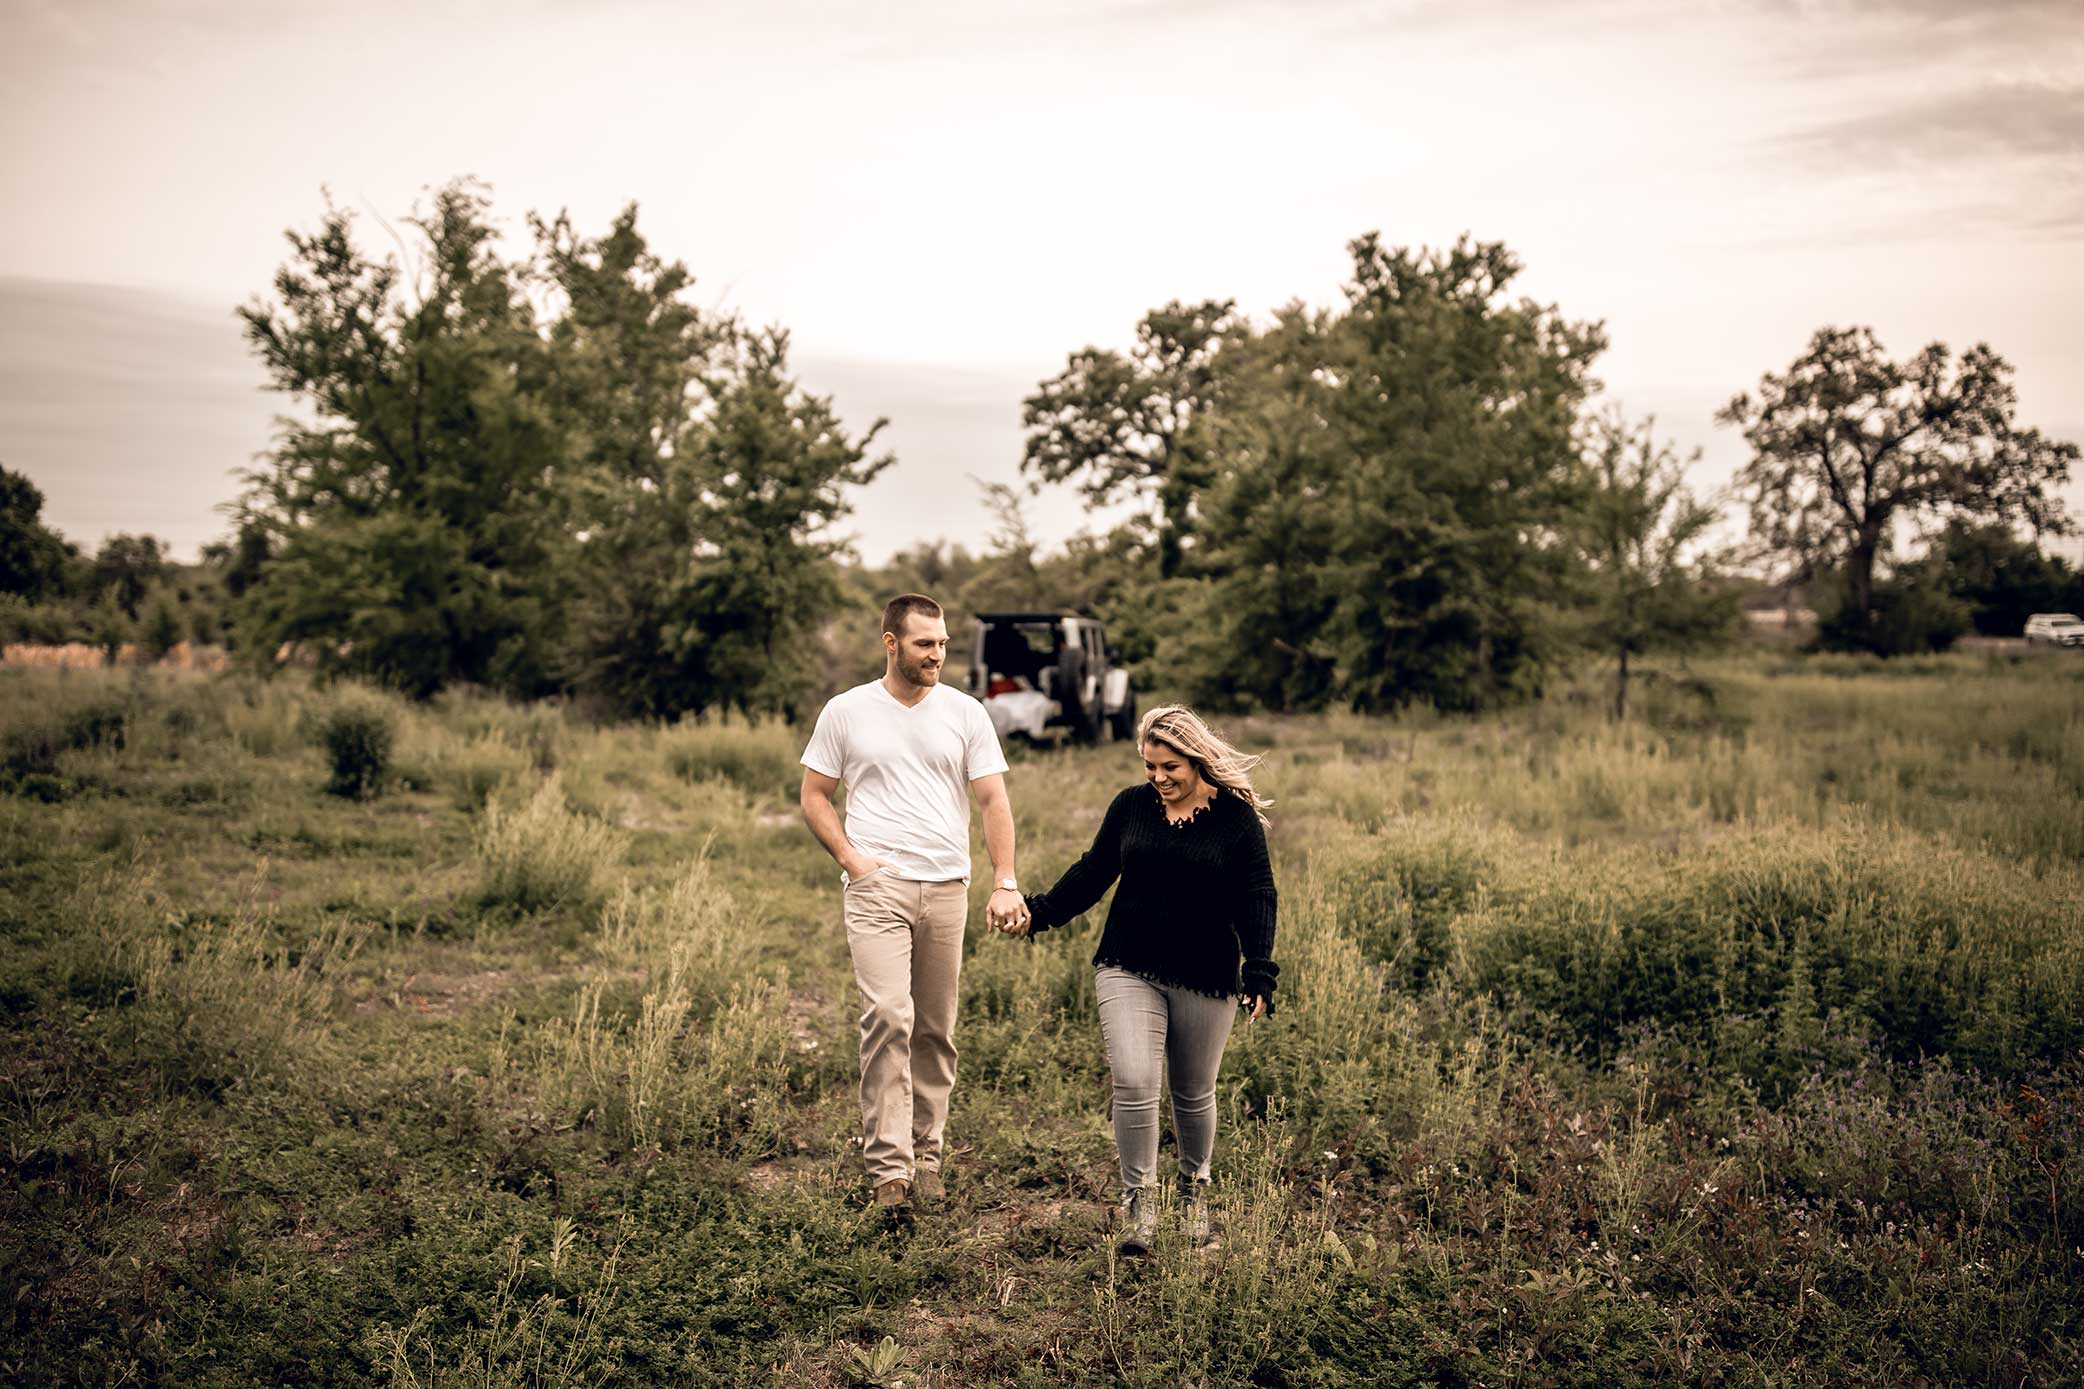 shelby-schiller-photography-lifestyle-couples-remi-colt-outdoor-jeep-adventure-14.jpg